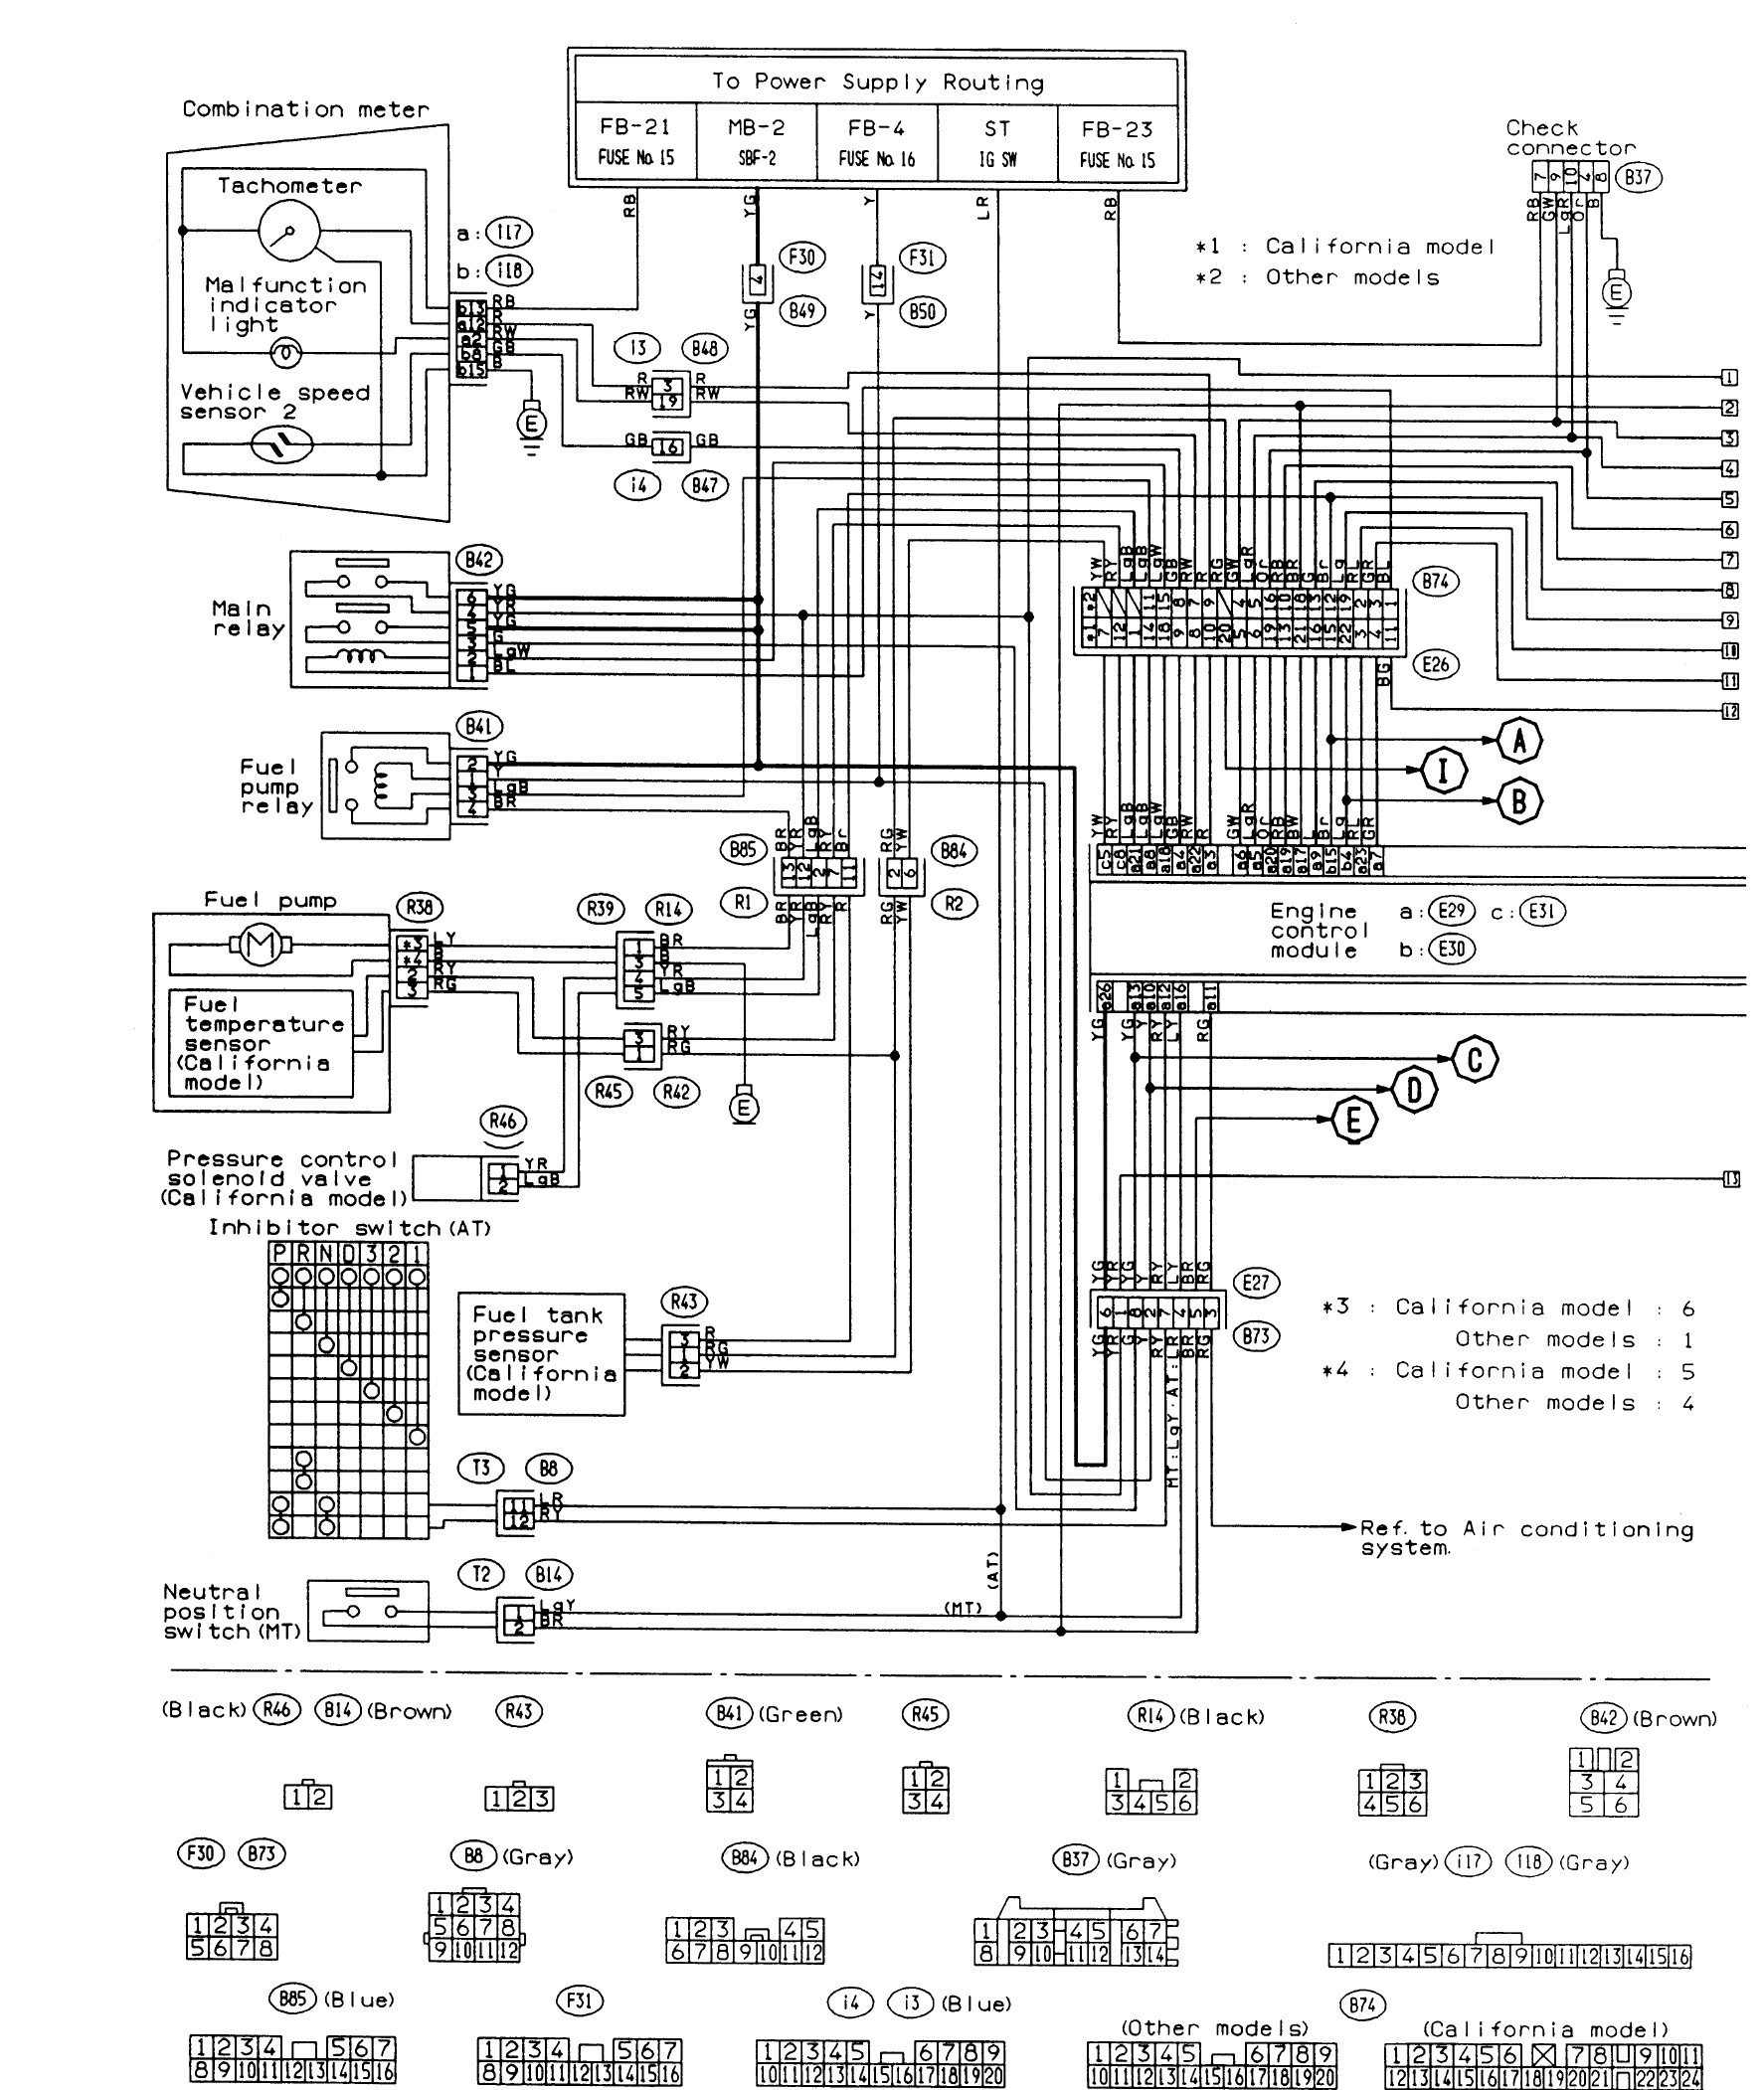 2002 Sebring Engine Diagram 2008 Subaru Impreza Engine Diagram Wiring Diagram Paper Of 2002 Sebring Engine Diagram 2002 Chrysler town and Country Transmission Wiring Wiring Diagram Used